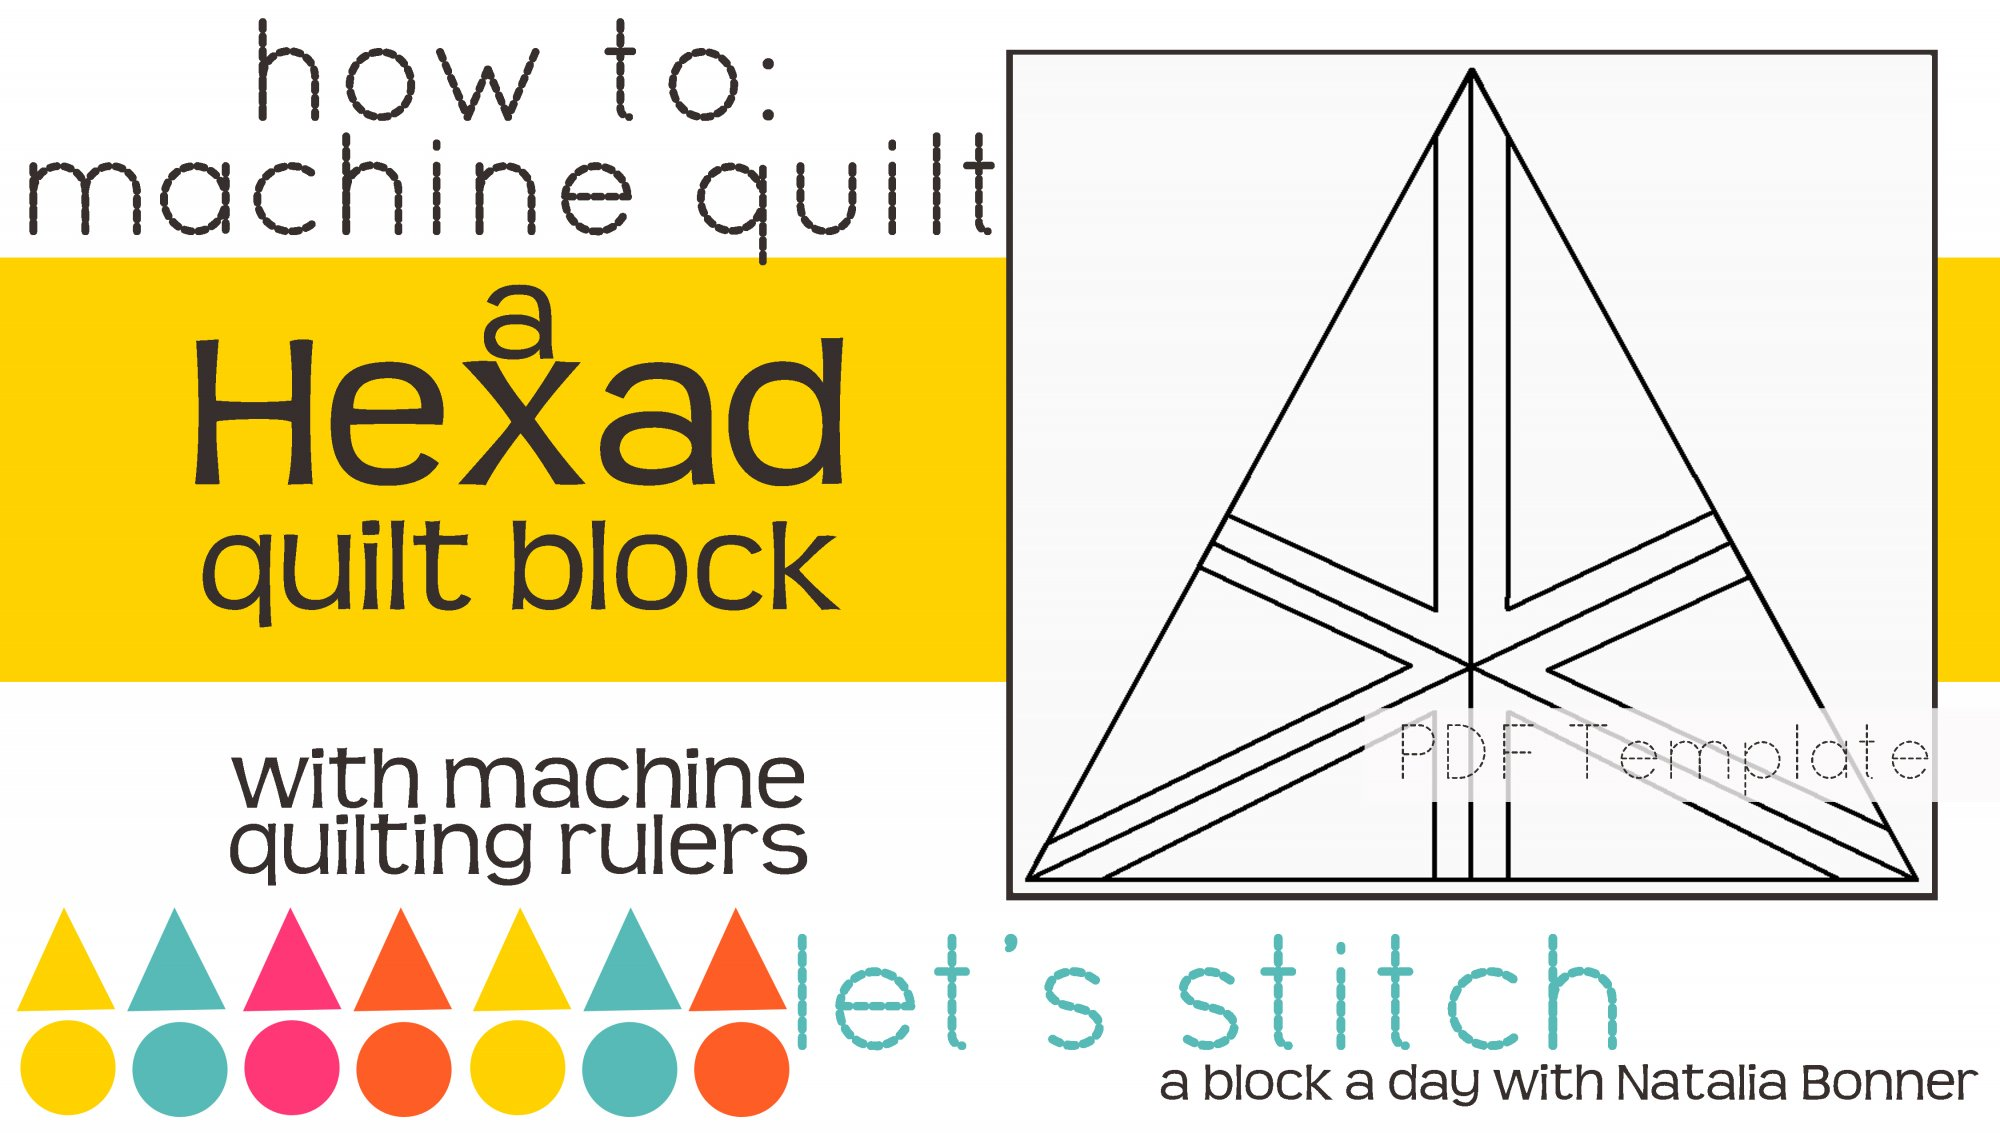 Let's Stitch - A Block a Day With Natalia Bonner - PDF - Hexad